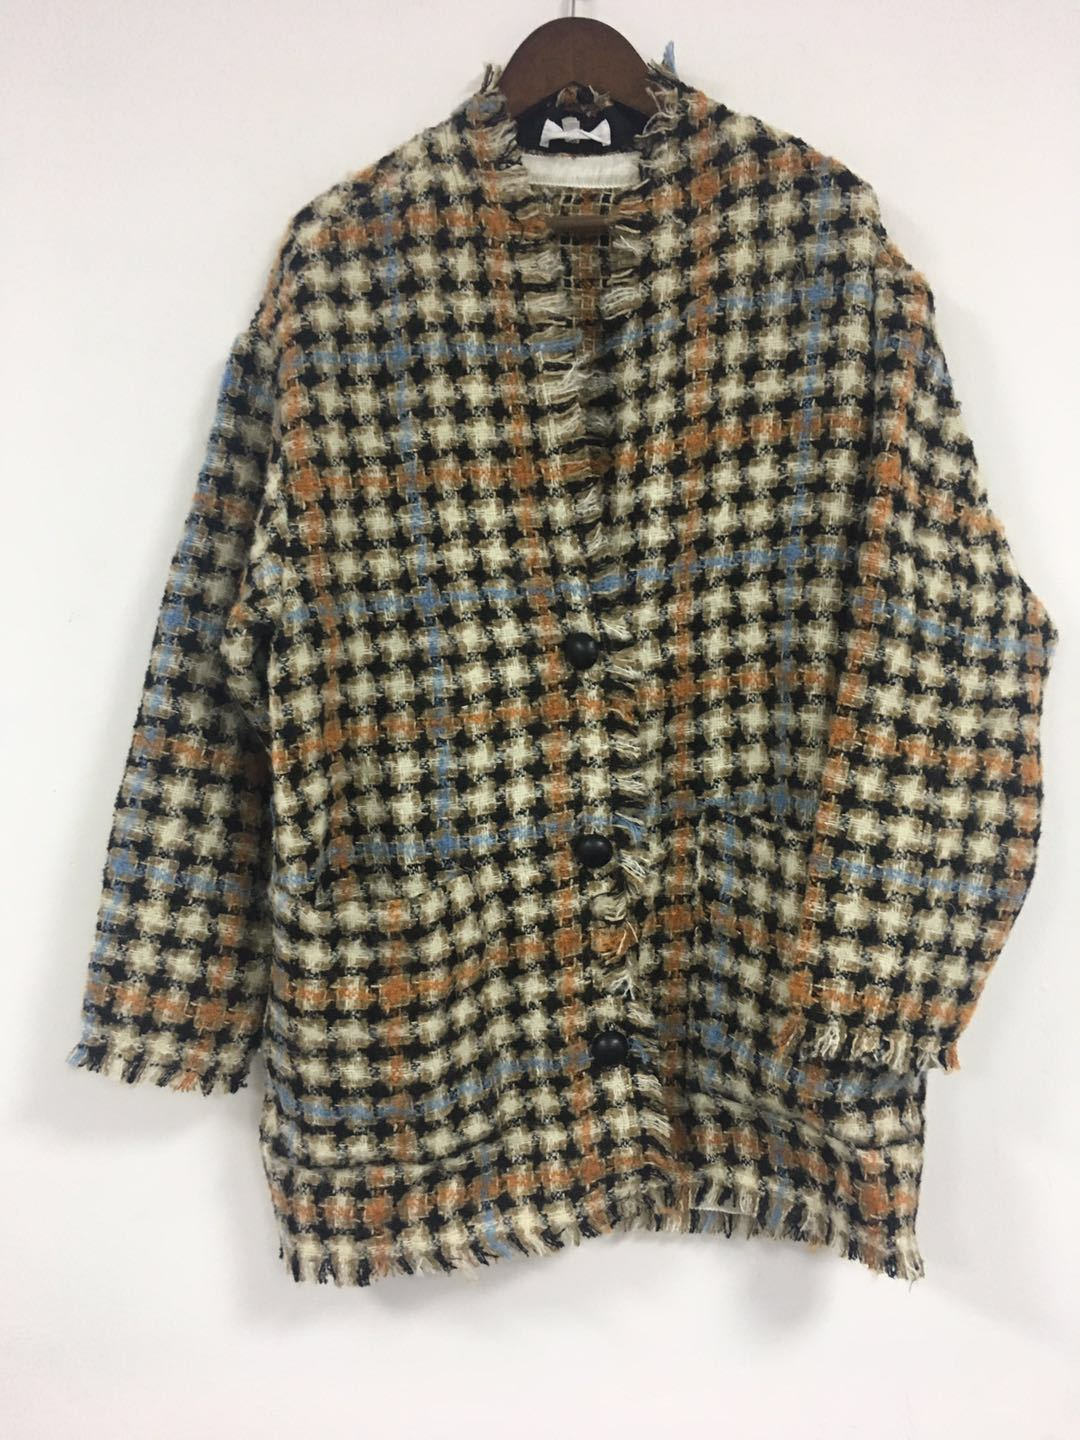 Image 2 - Women Sweater2019 Autumn and Winter Small Fragrance Wind Tweed Wool Blend Retro Check Coat CardiganPullovers